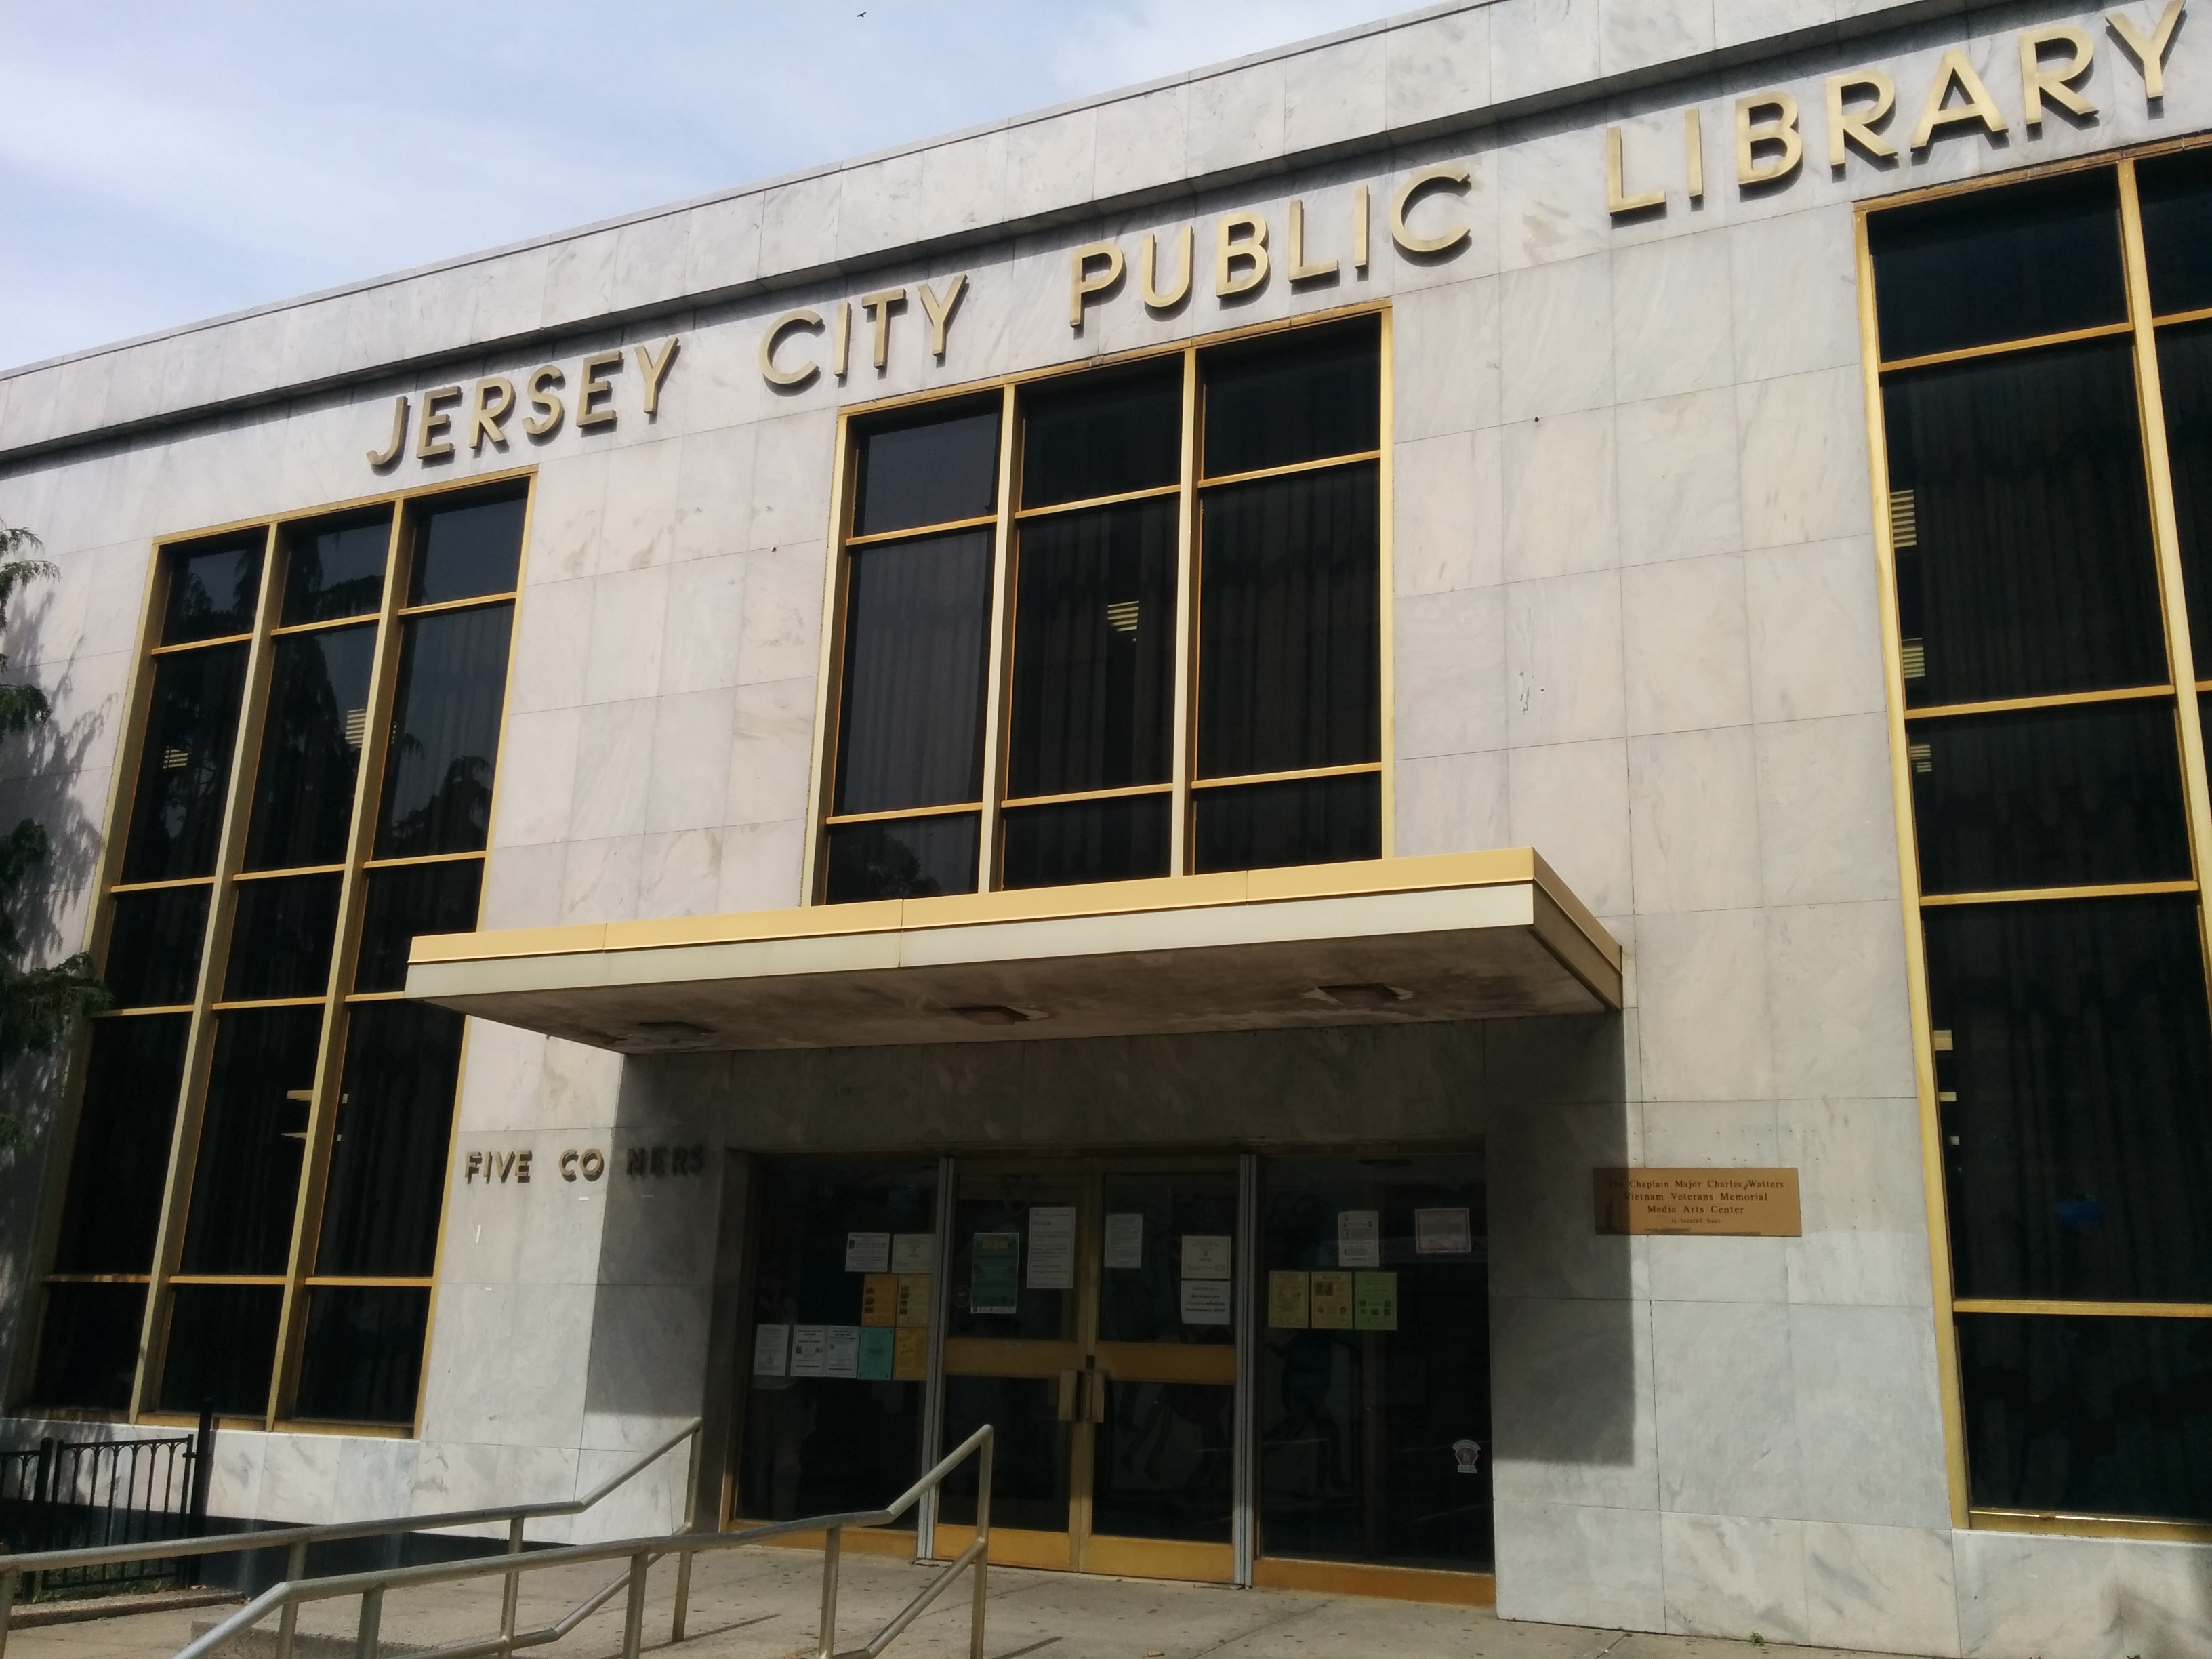 Five Corners Branch Jersey City Free Public Library